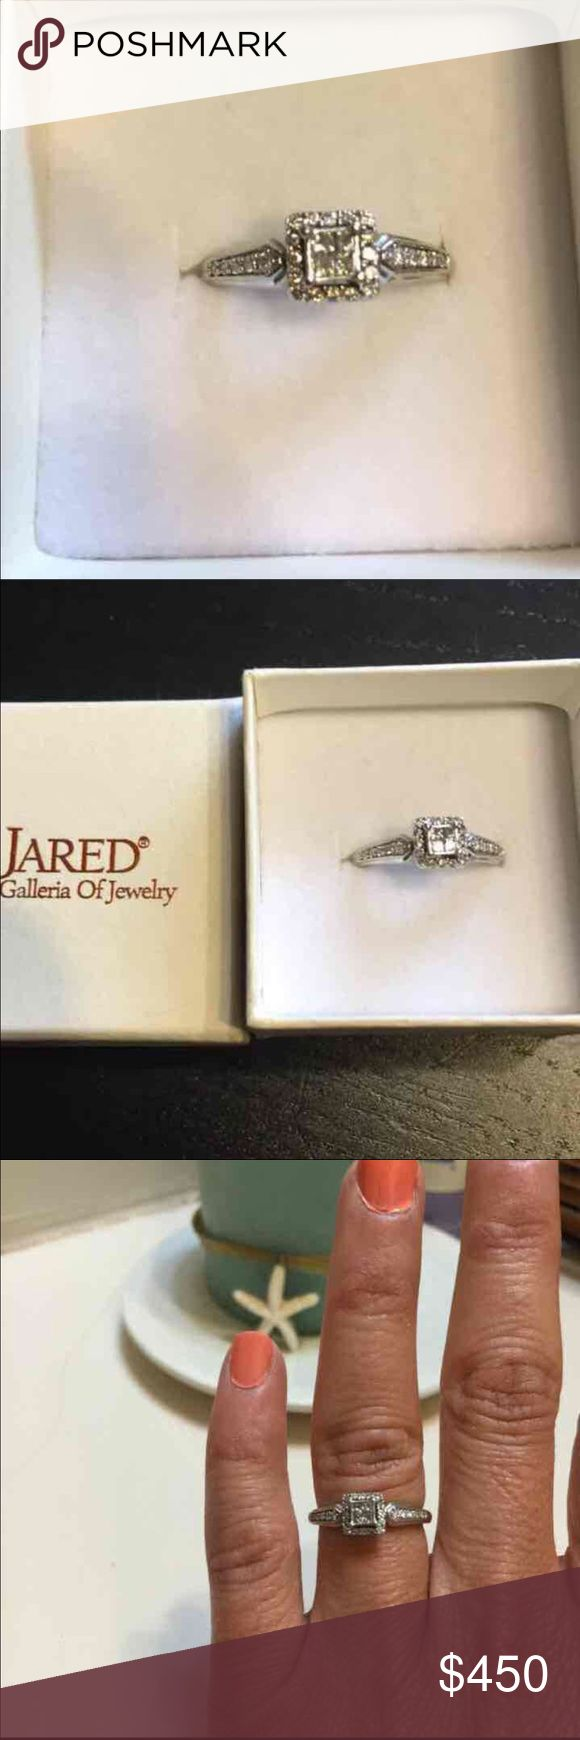 100% Authentic Diamond Ring Total diamond weight 1/4 carat.  It is made of both princess cut and round diamonds.  The central diamond is made of 4  princess cut diamond (.03 carats) that make up 0.12 carats and he surrounding diamonds are .001, .0068, .004 carats.  The ring itself is 10K white gold.  Purchased at Jared and comes with lifetime warranty and service/inspection plan.  In PERFECT condition Jewelry Rings